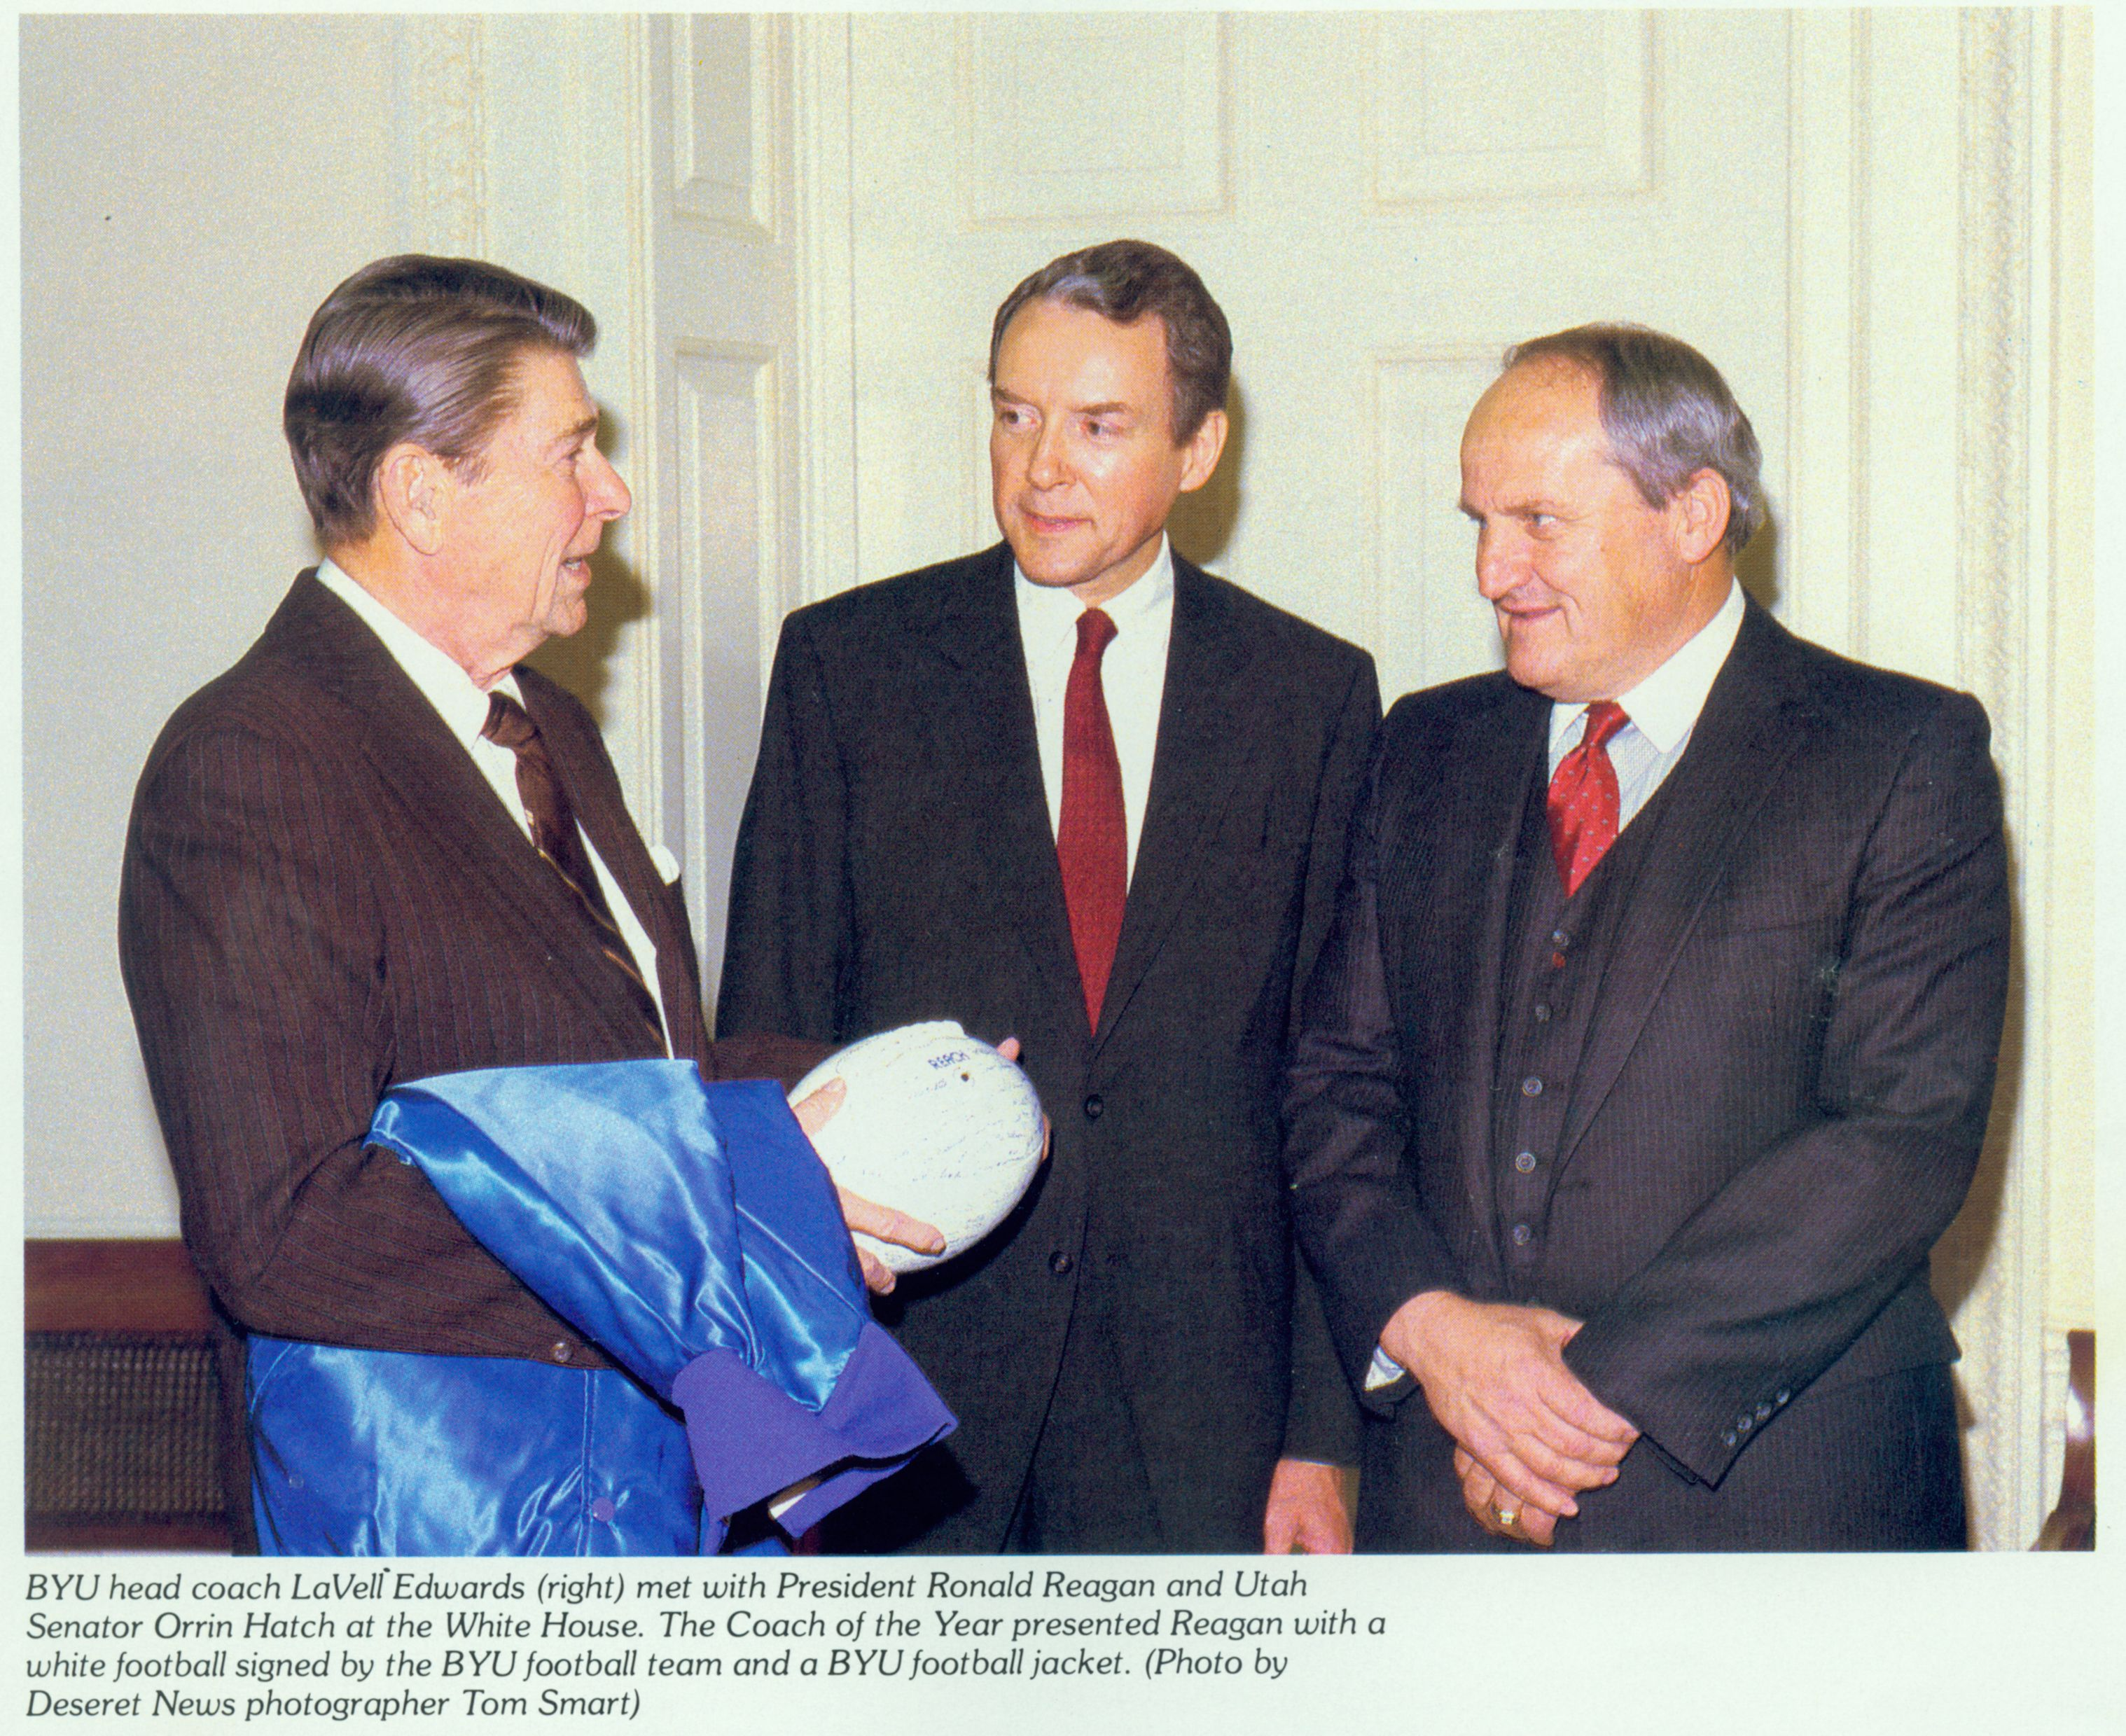 BYU head coach LaVell Edwards, right, meets with President Ronald Reagan and Sen. Orrin Hatch, R-Utah, at the White House. The Coach of the Year presented Reagan with a white football signed by the BYU football team and a BYU football jacket.